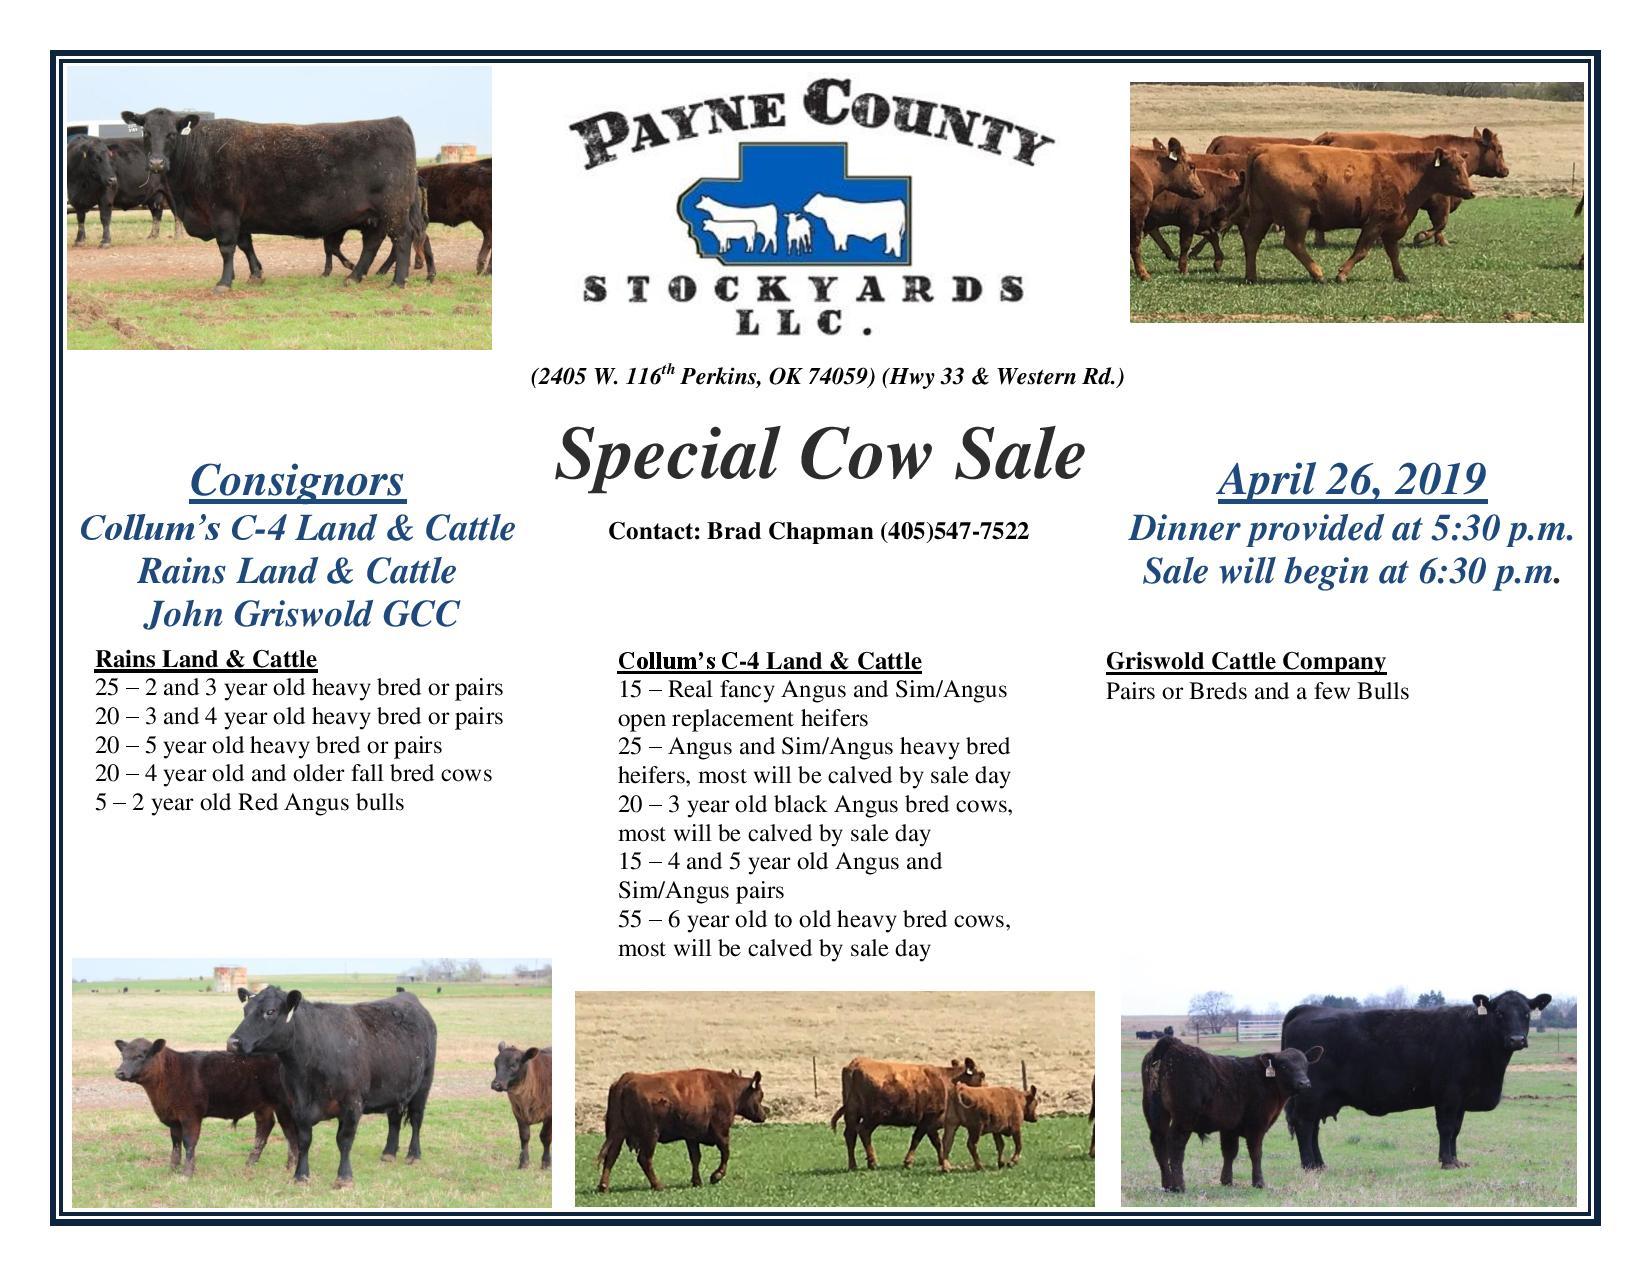 Payne County Stockyards Special Cow Sale updated.jpg